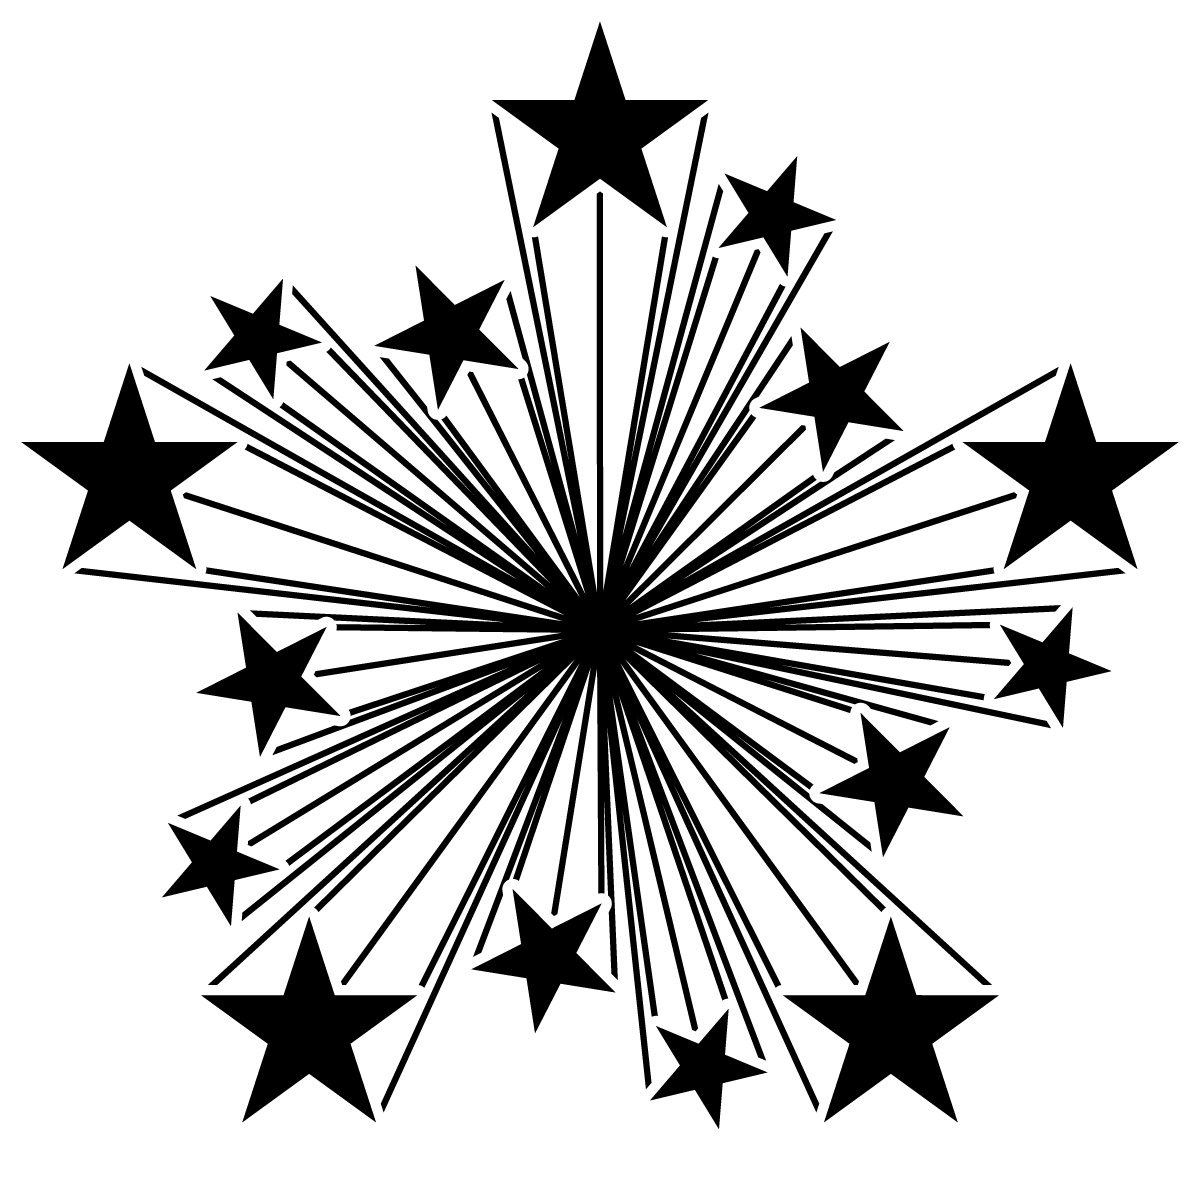 Star Burst Clipart 20 Free Cliparts